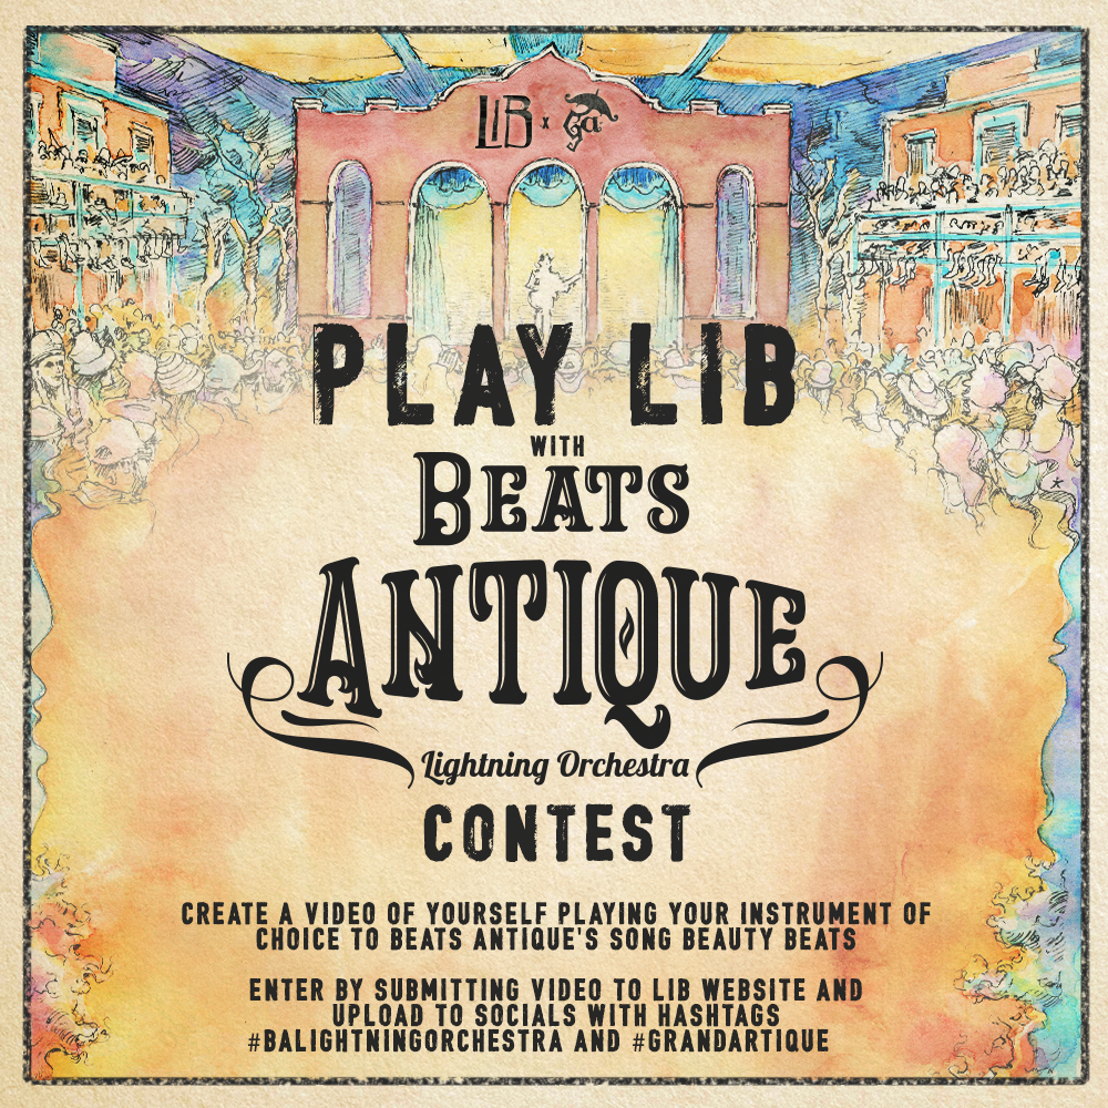 Do LaB and Beats Antique Offer Fans The Chance To Win a Lightning in a Bottle Festival Pass and A Spot to Perform in The Beats Antique Lighting Orchestra